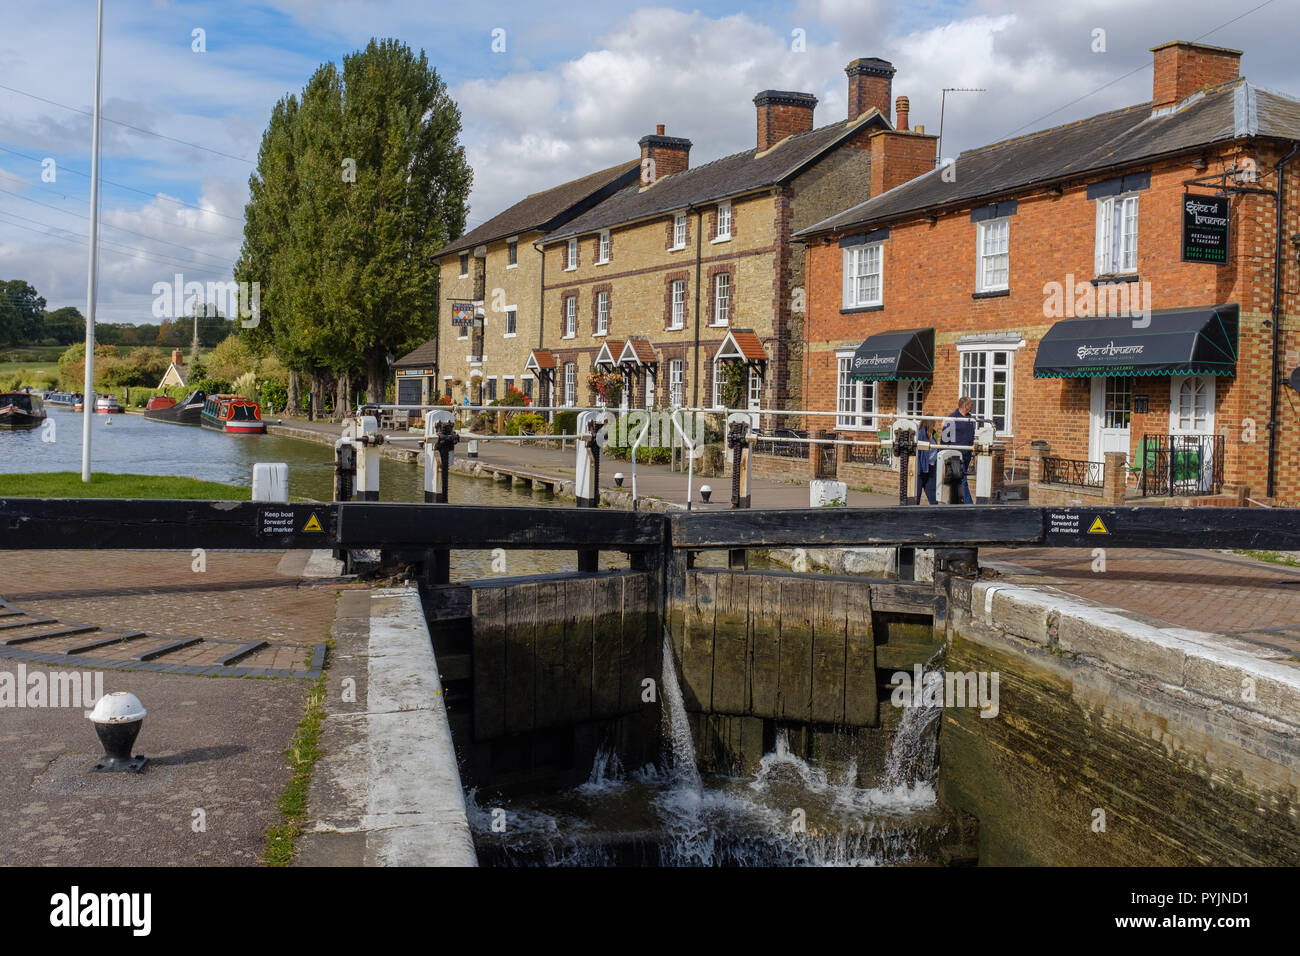 View across canal lock to The Canal Museum at Stoke Bruerne on the Grand Union Canal, Northampton, England - Stock Image